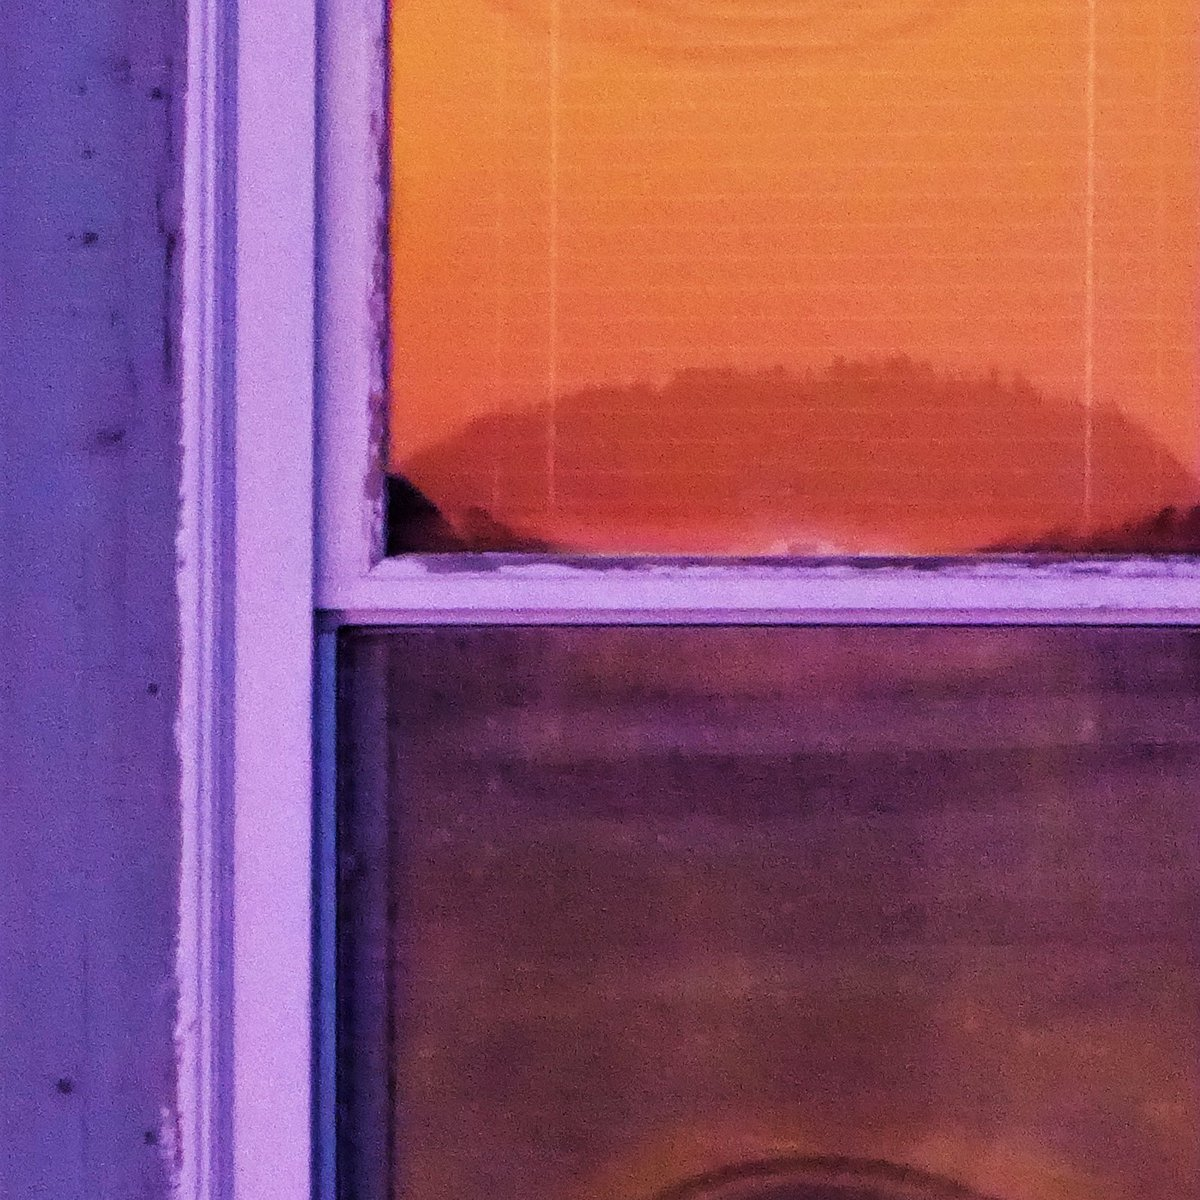 Sunrise reflected off Heather's window; the sunrise itself, untouched. This was back east. #purple #orange #colour #reflection #pairingpic.twitter.com/4N8JfYZsAM